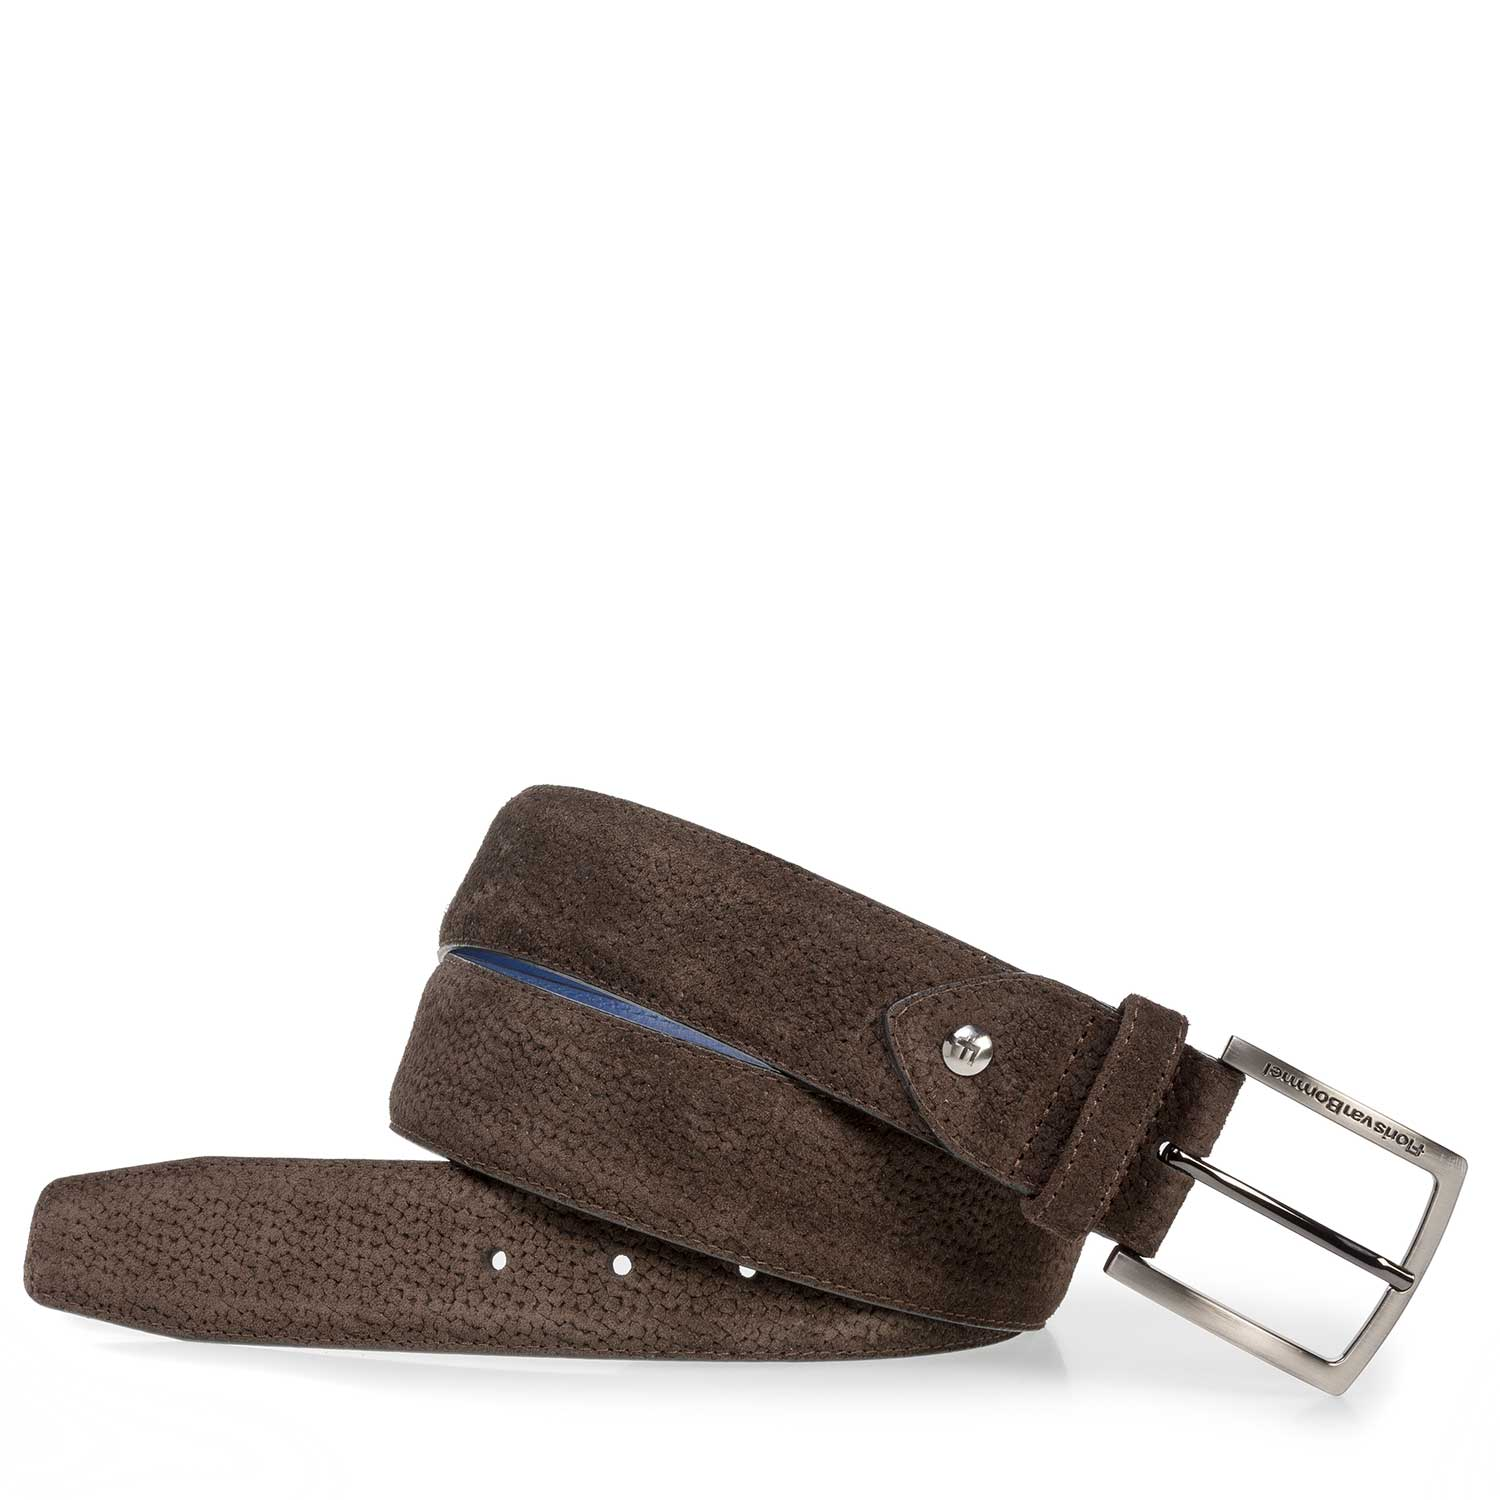 75202/22 - Dark brown suede leather belt with print